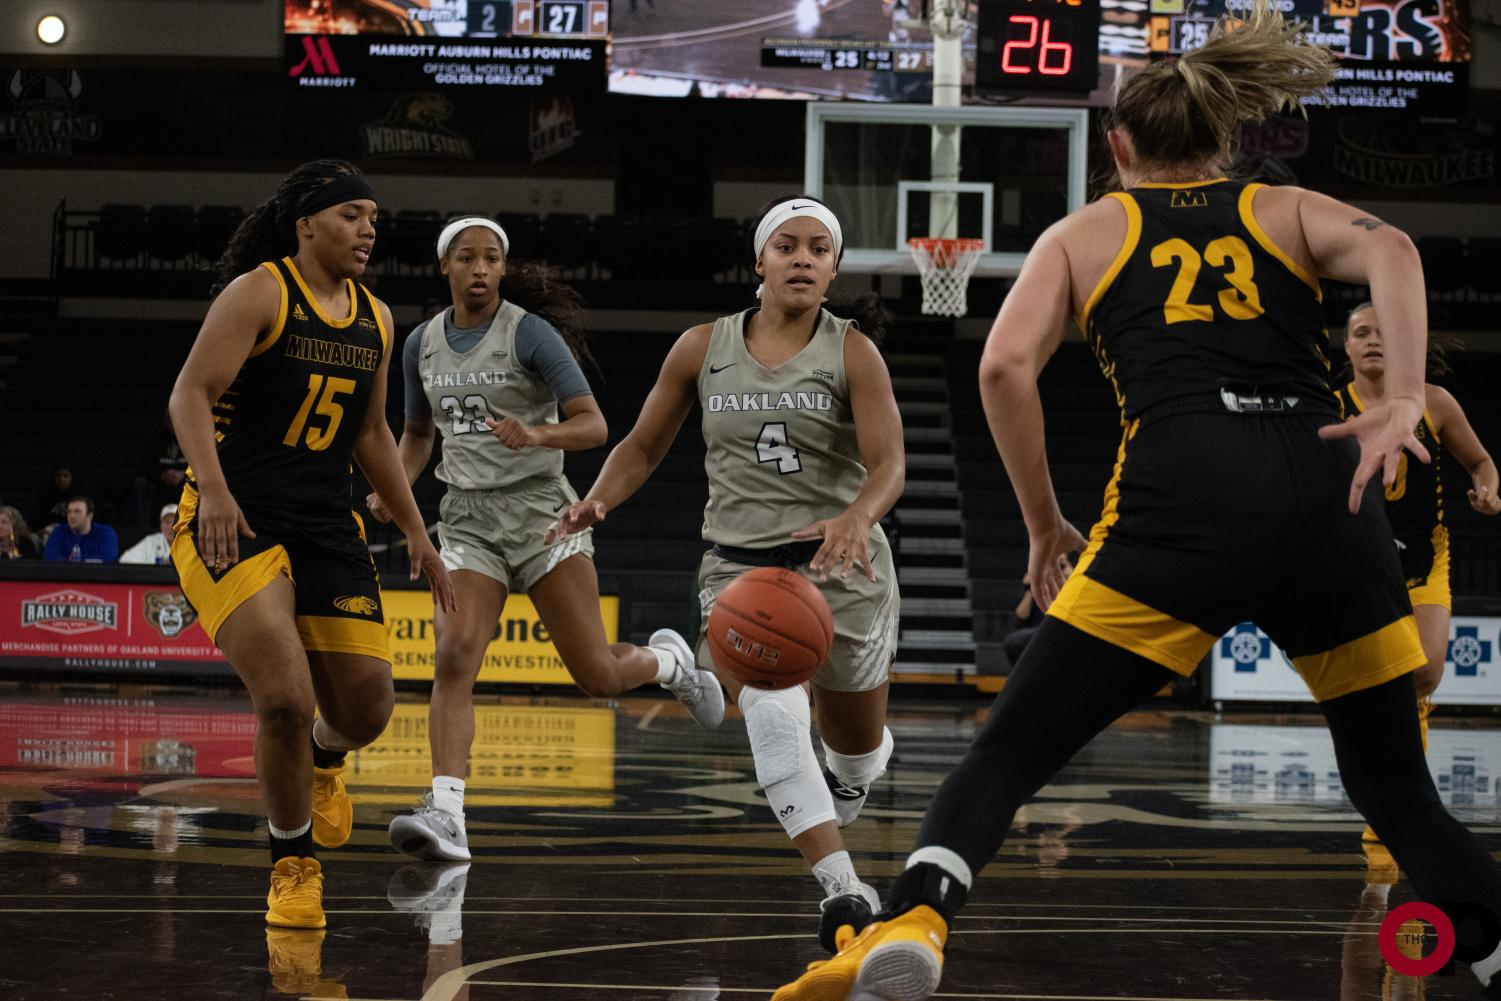 The Golden Grizzlies achieve a 78-62 victory over Milwaukee on Saturday, Jan. 11.